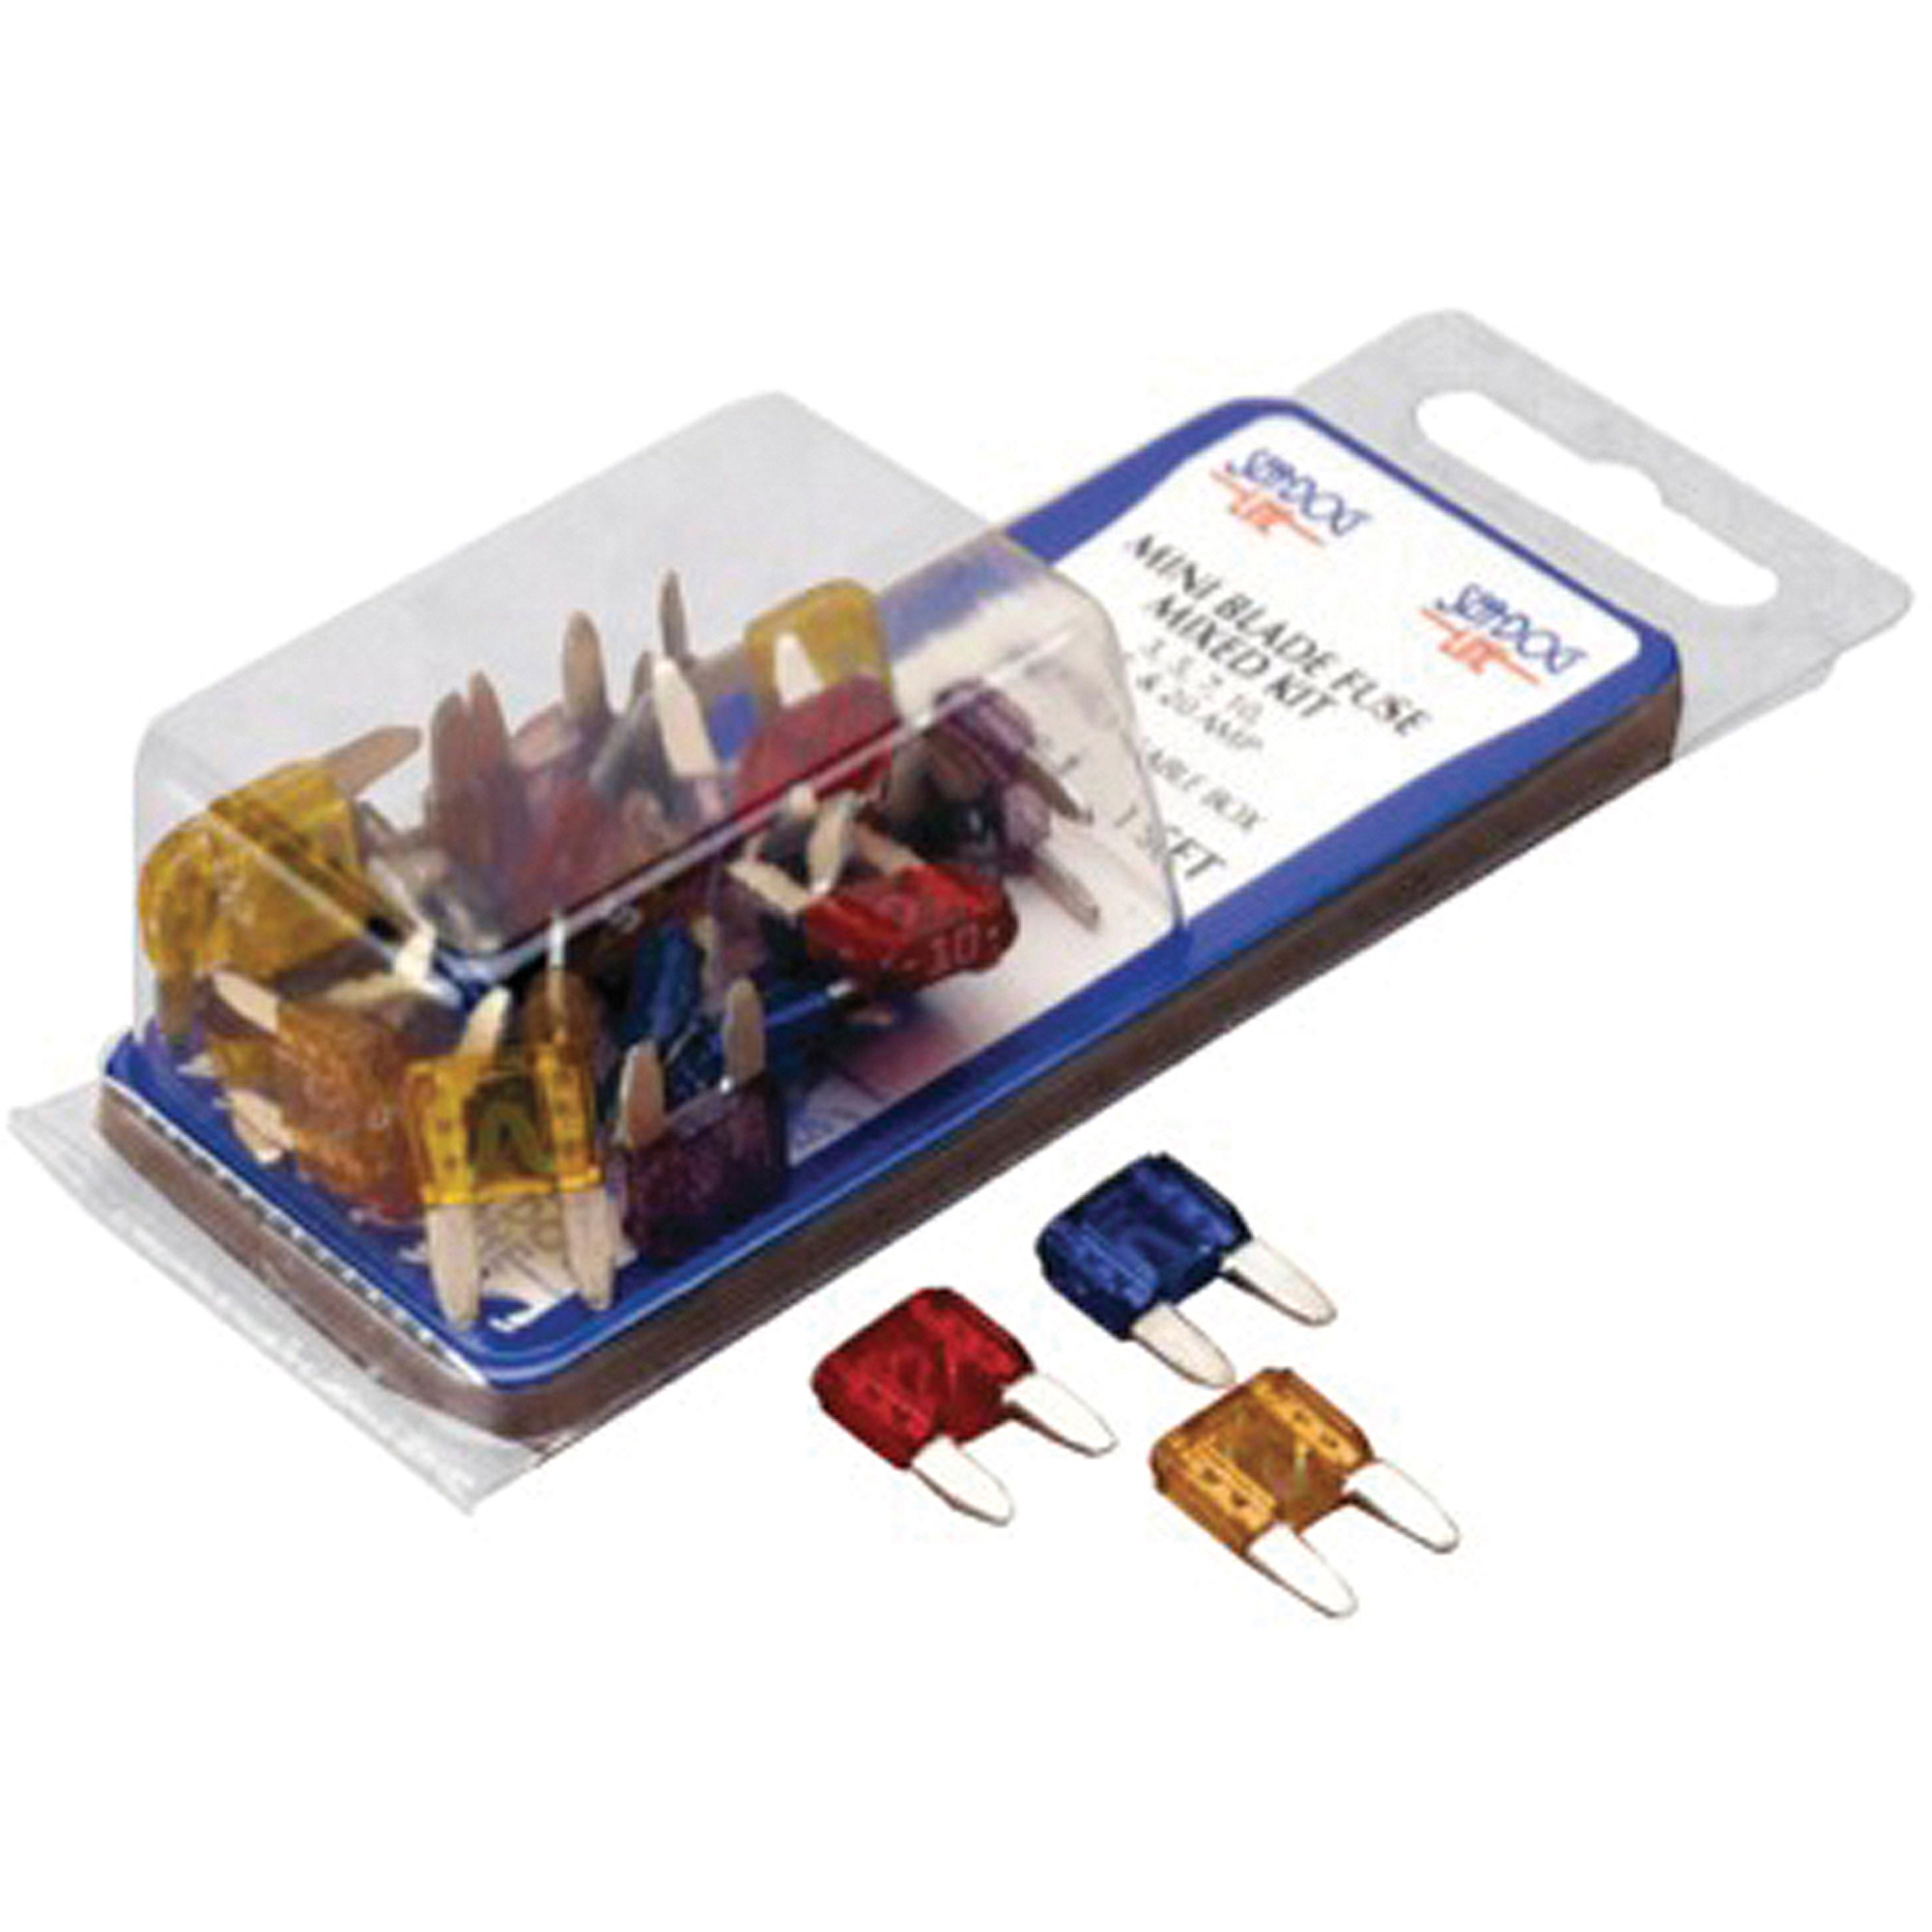 Sea Dog ATM Mini Blade Styled Mixed Fuse Kit, Contains 5 each of 3, 5, 7.5, 10, 15 and 20 Amp Fuses